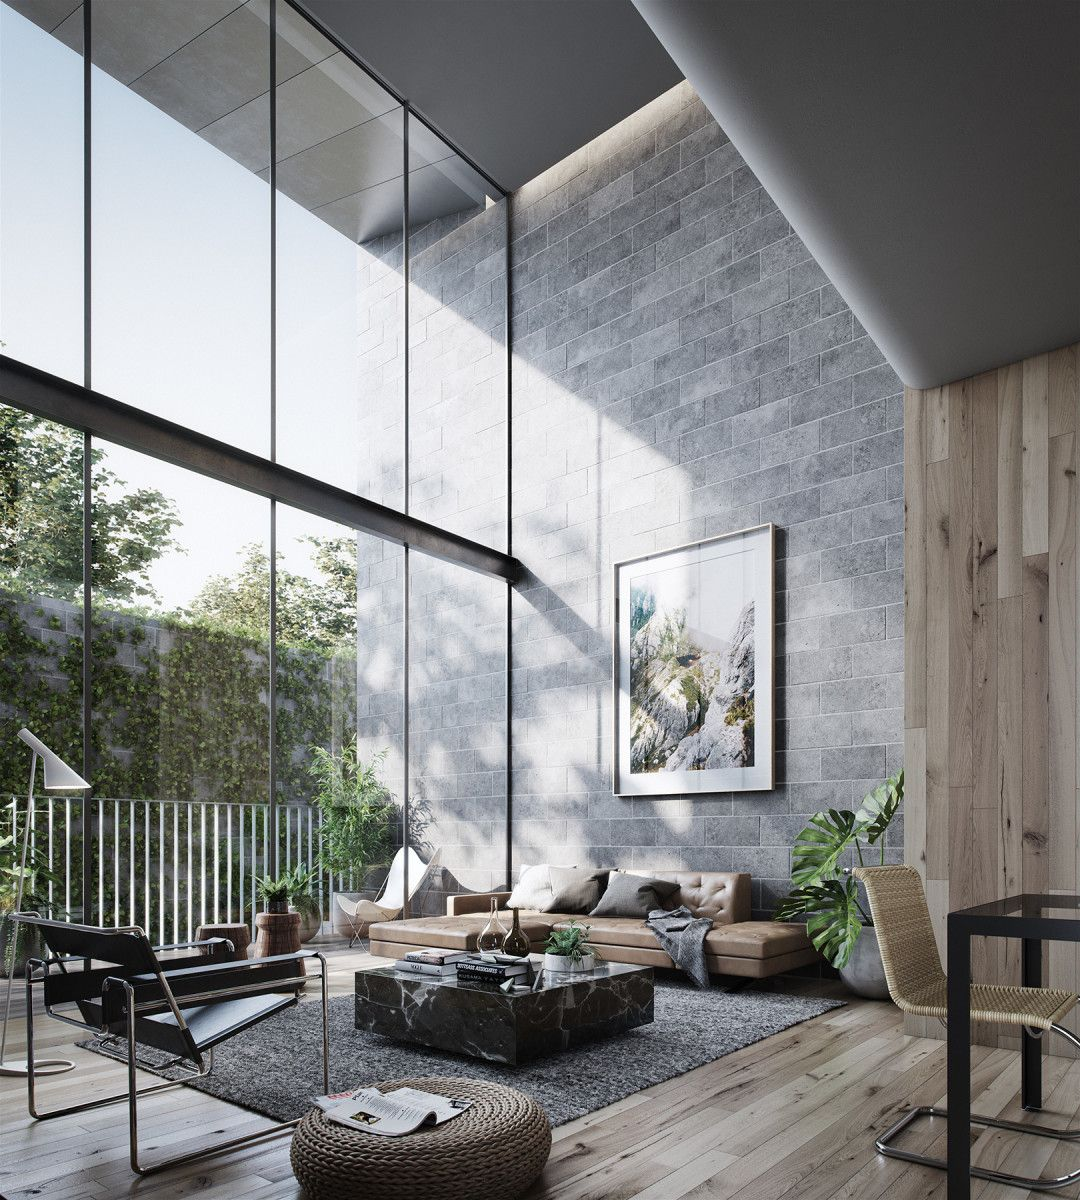 Cozy Luxury Homes Interior Gallery: Minimal Interior Design Inspiration